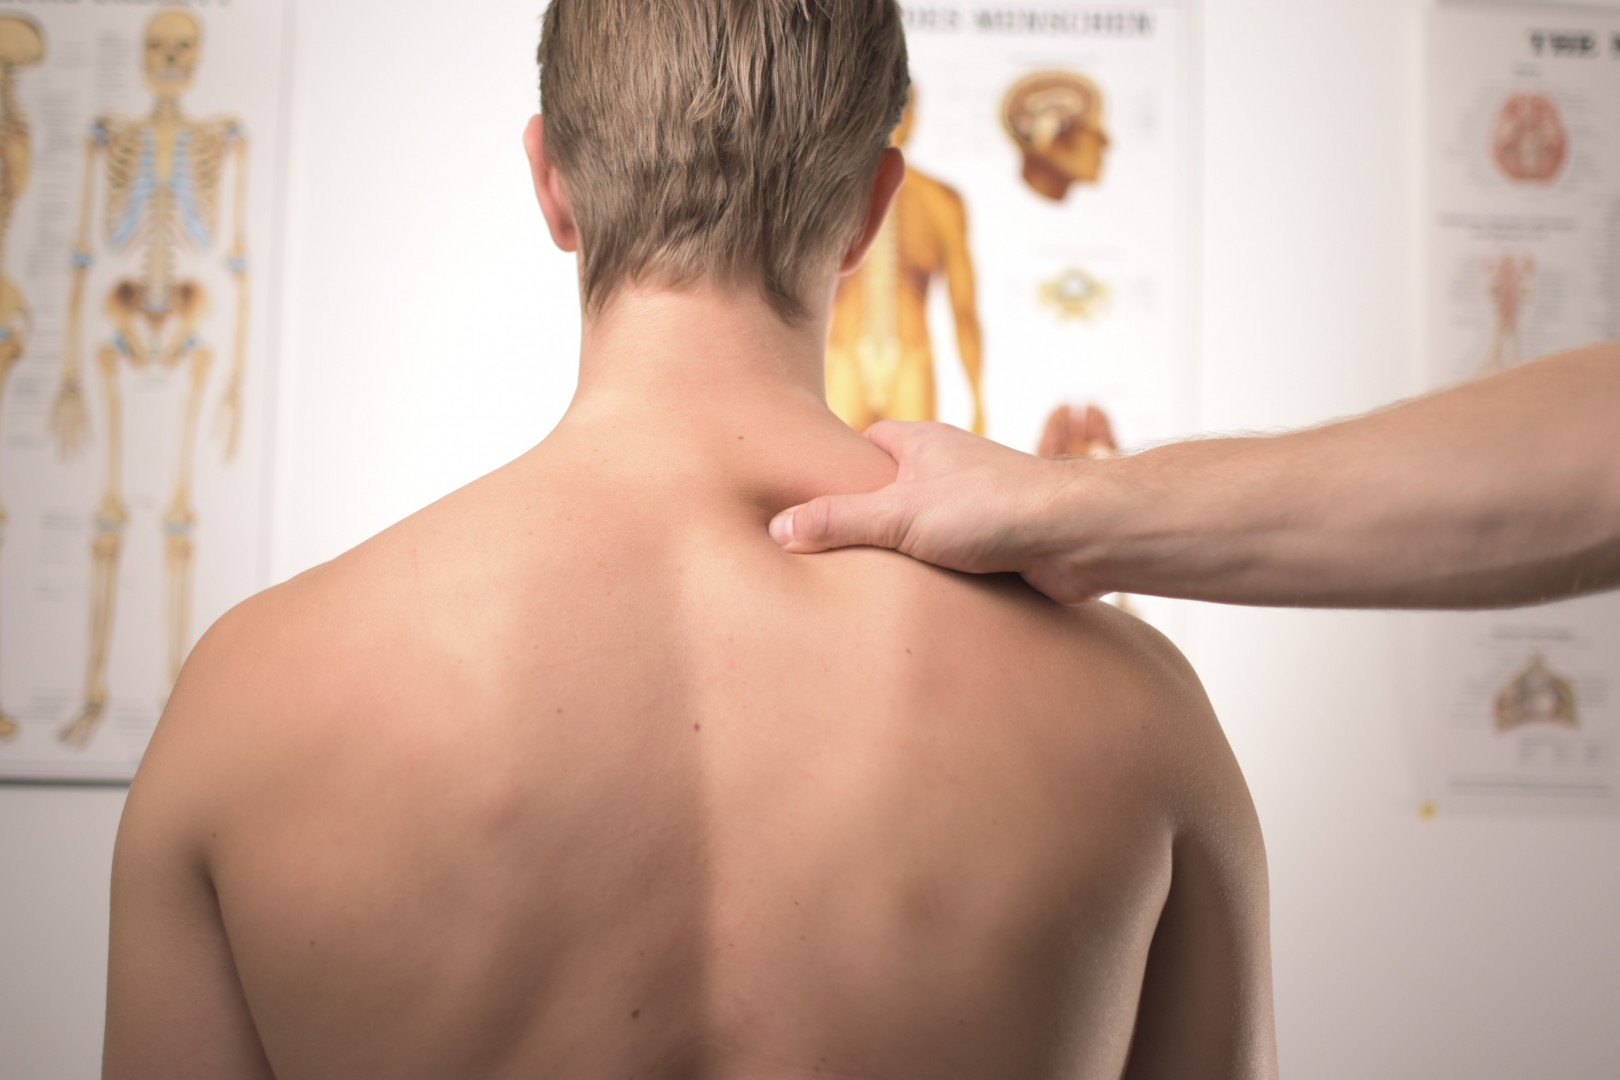 7 Conditions that Can Be Addressed by Chiropractic Care, Dixon Chiropractic in Plantation, Florida